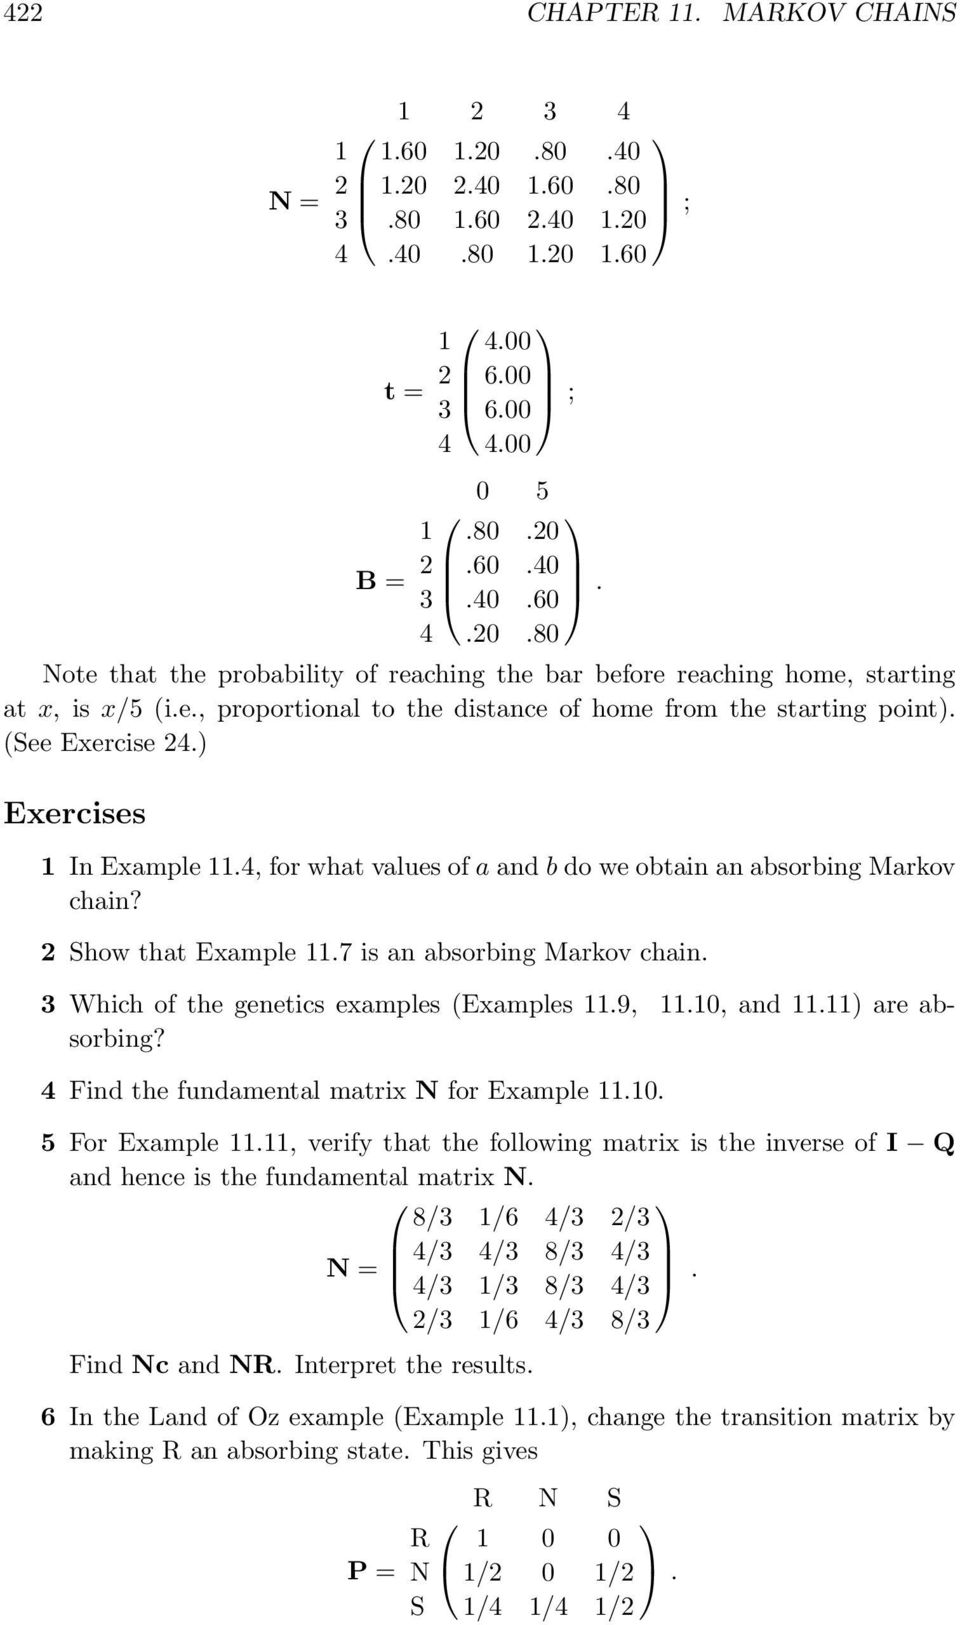 2 Show that Example 11.7 is an absorbing Markov chain. 3 Which of the genetics examples (Examples 11.9, 11.10, and 11.11) are absorbing? 4 Find the fundamental matrix N for Example 11.10. 5 For Example 11.